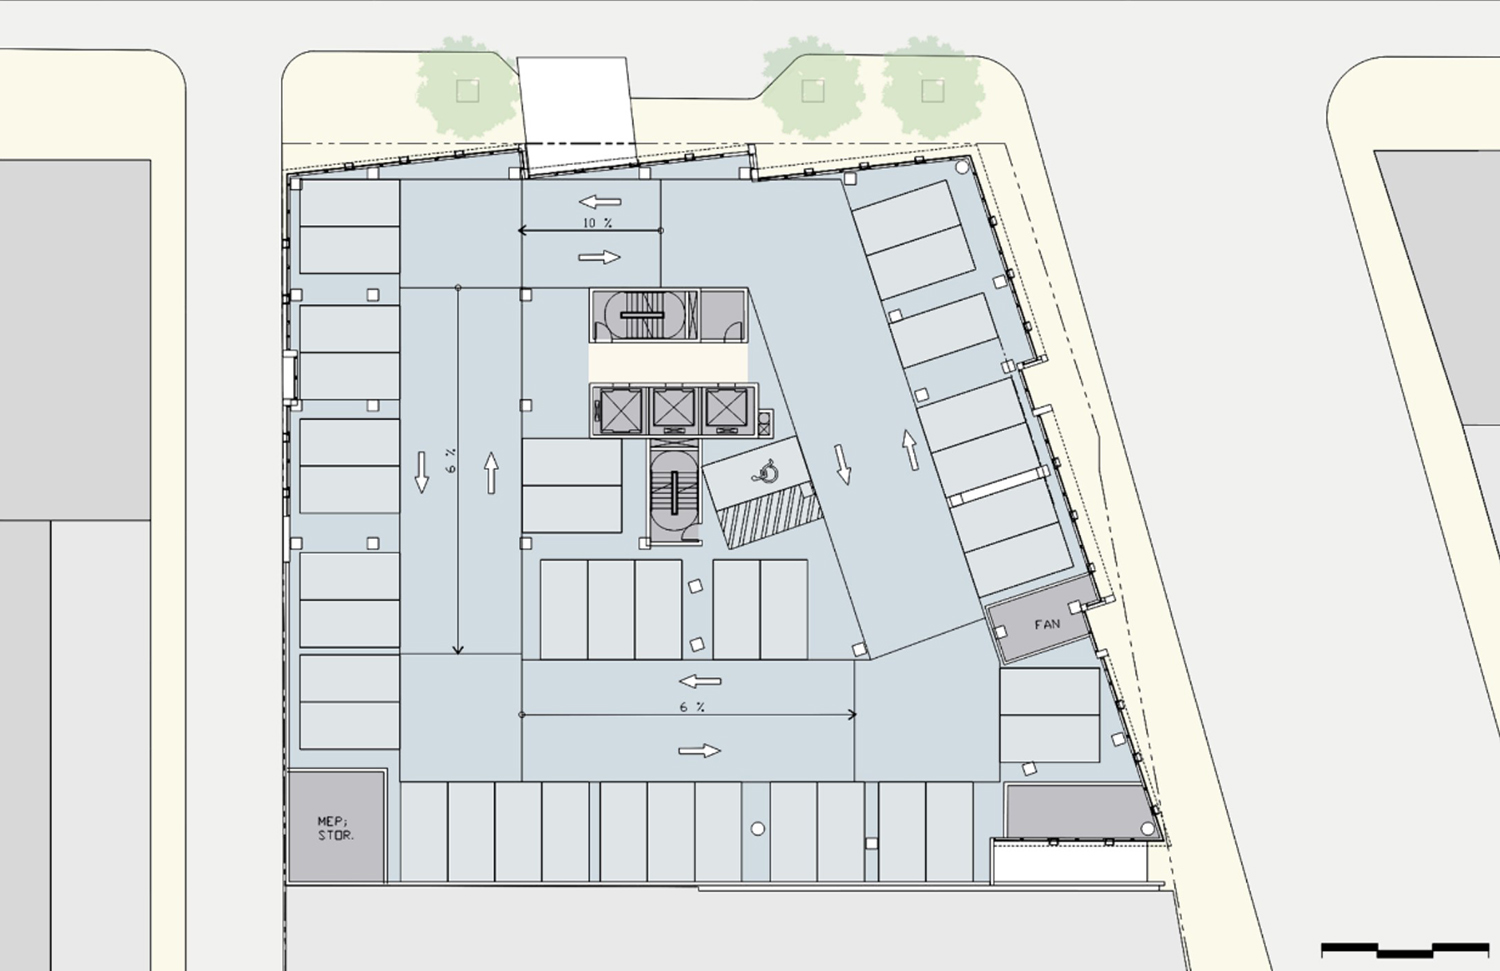 Typical Parking Floor Plan for 1130 N State Street. Drawing by SCB